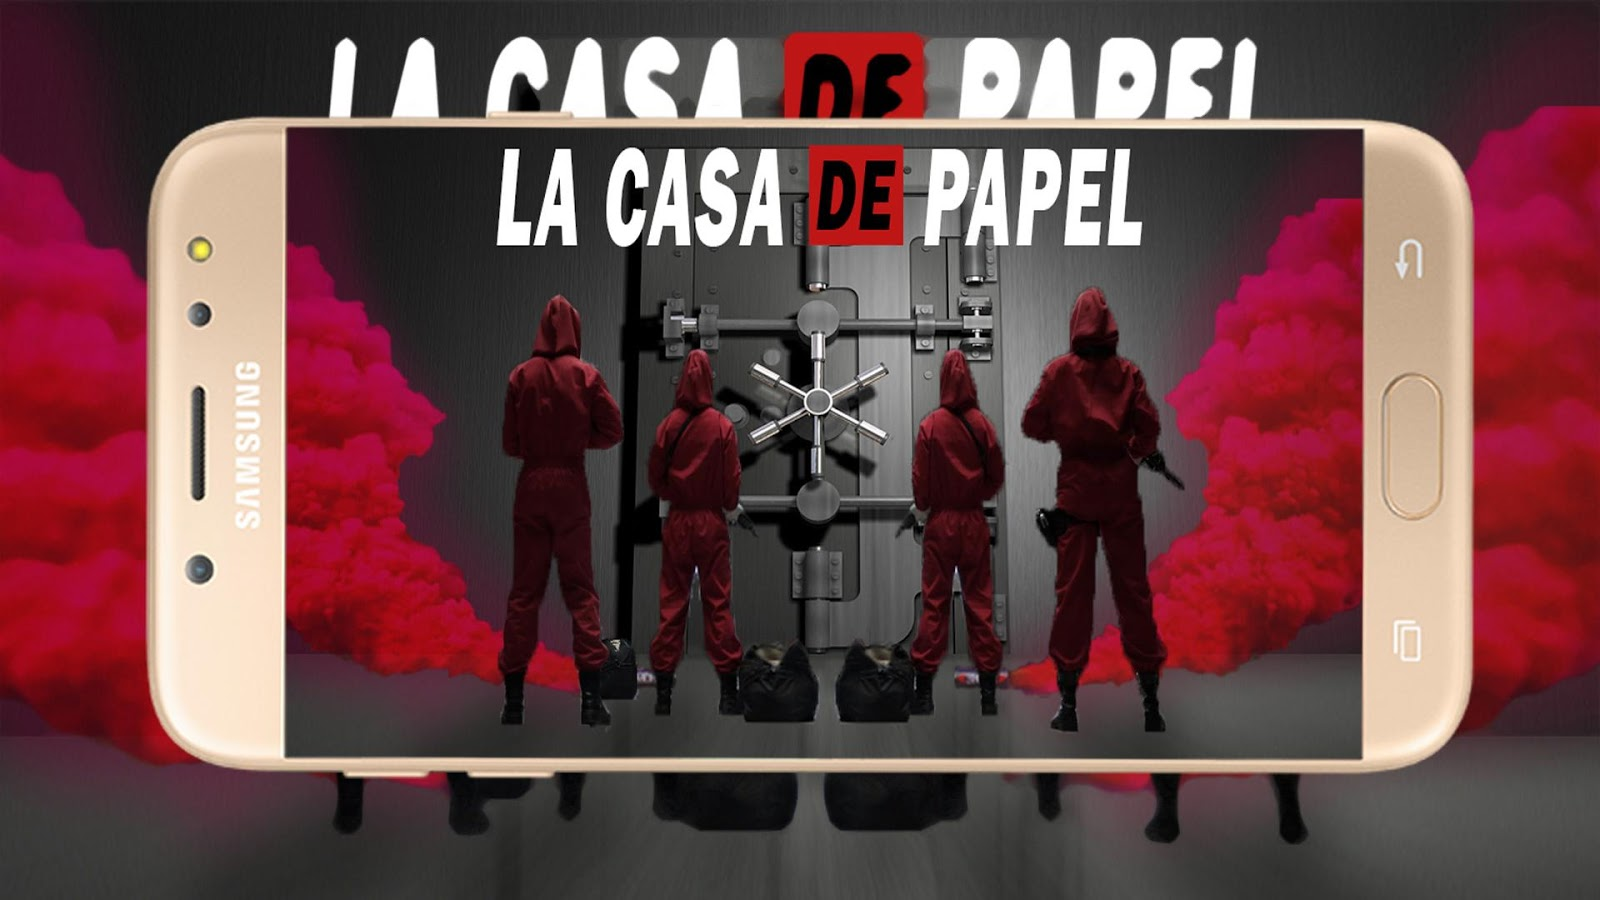 La Casa De Papel Hd Wallpaper Best 4k Picture 1 0 Apk Download